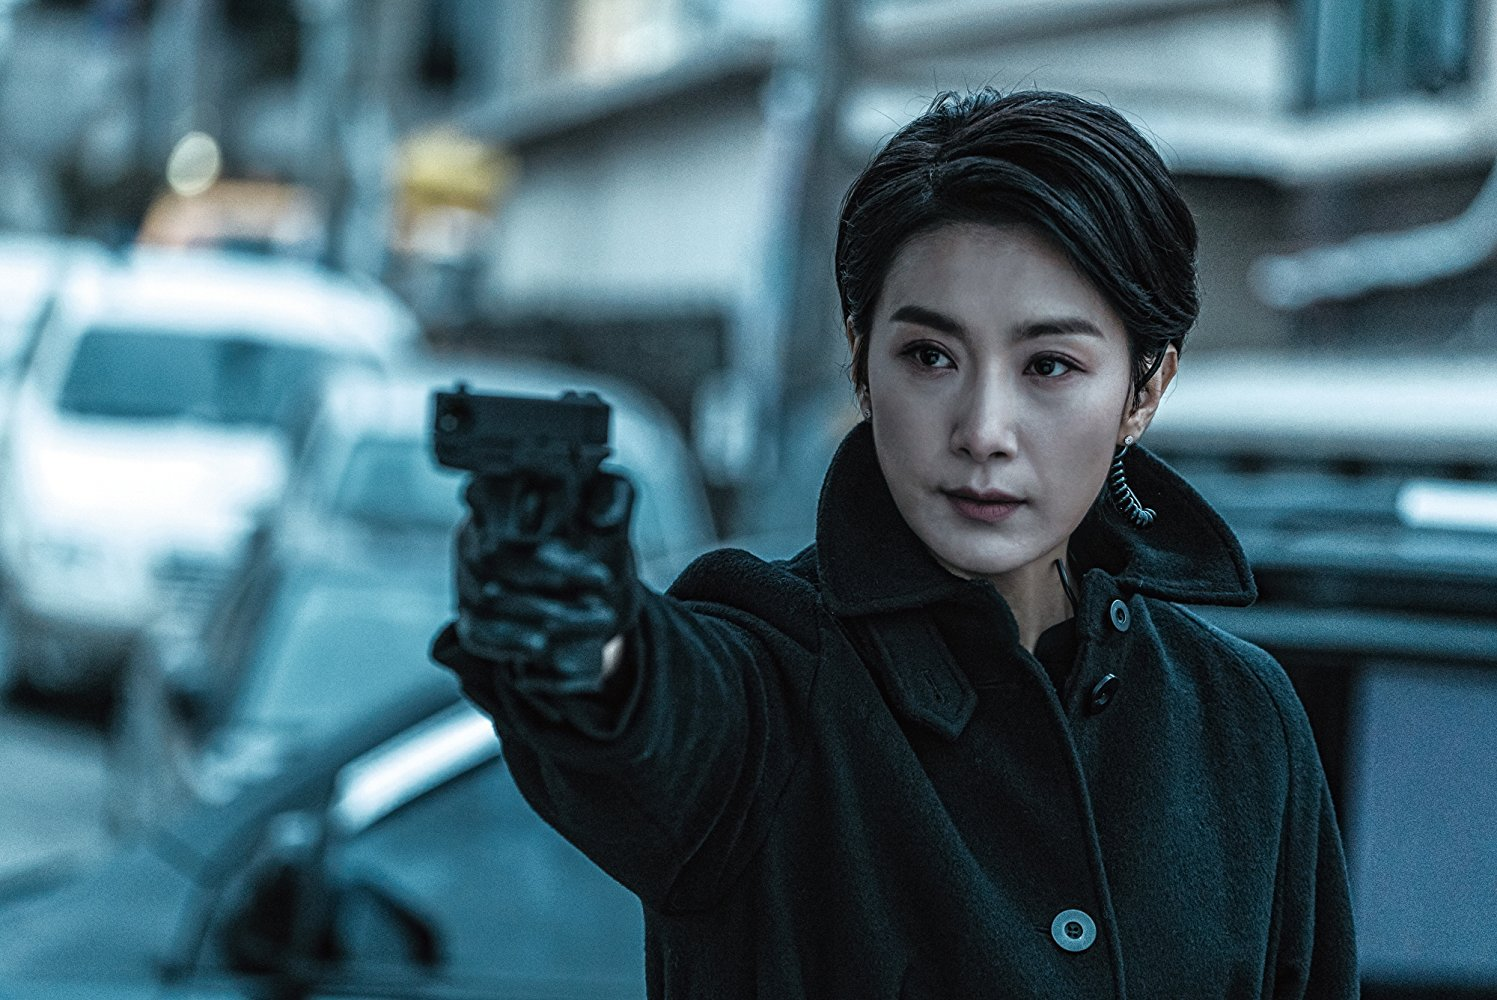 Film: The villainess (Ak-Nyeo)